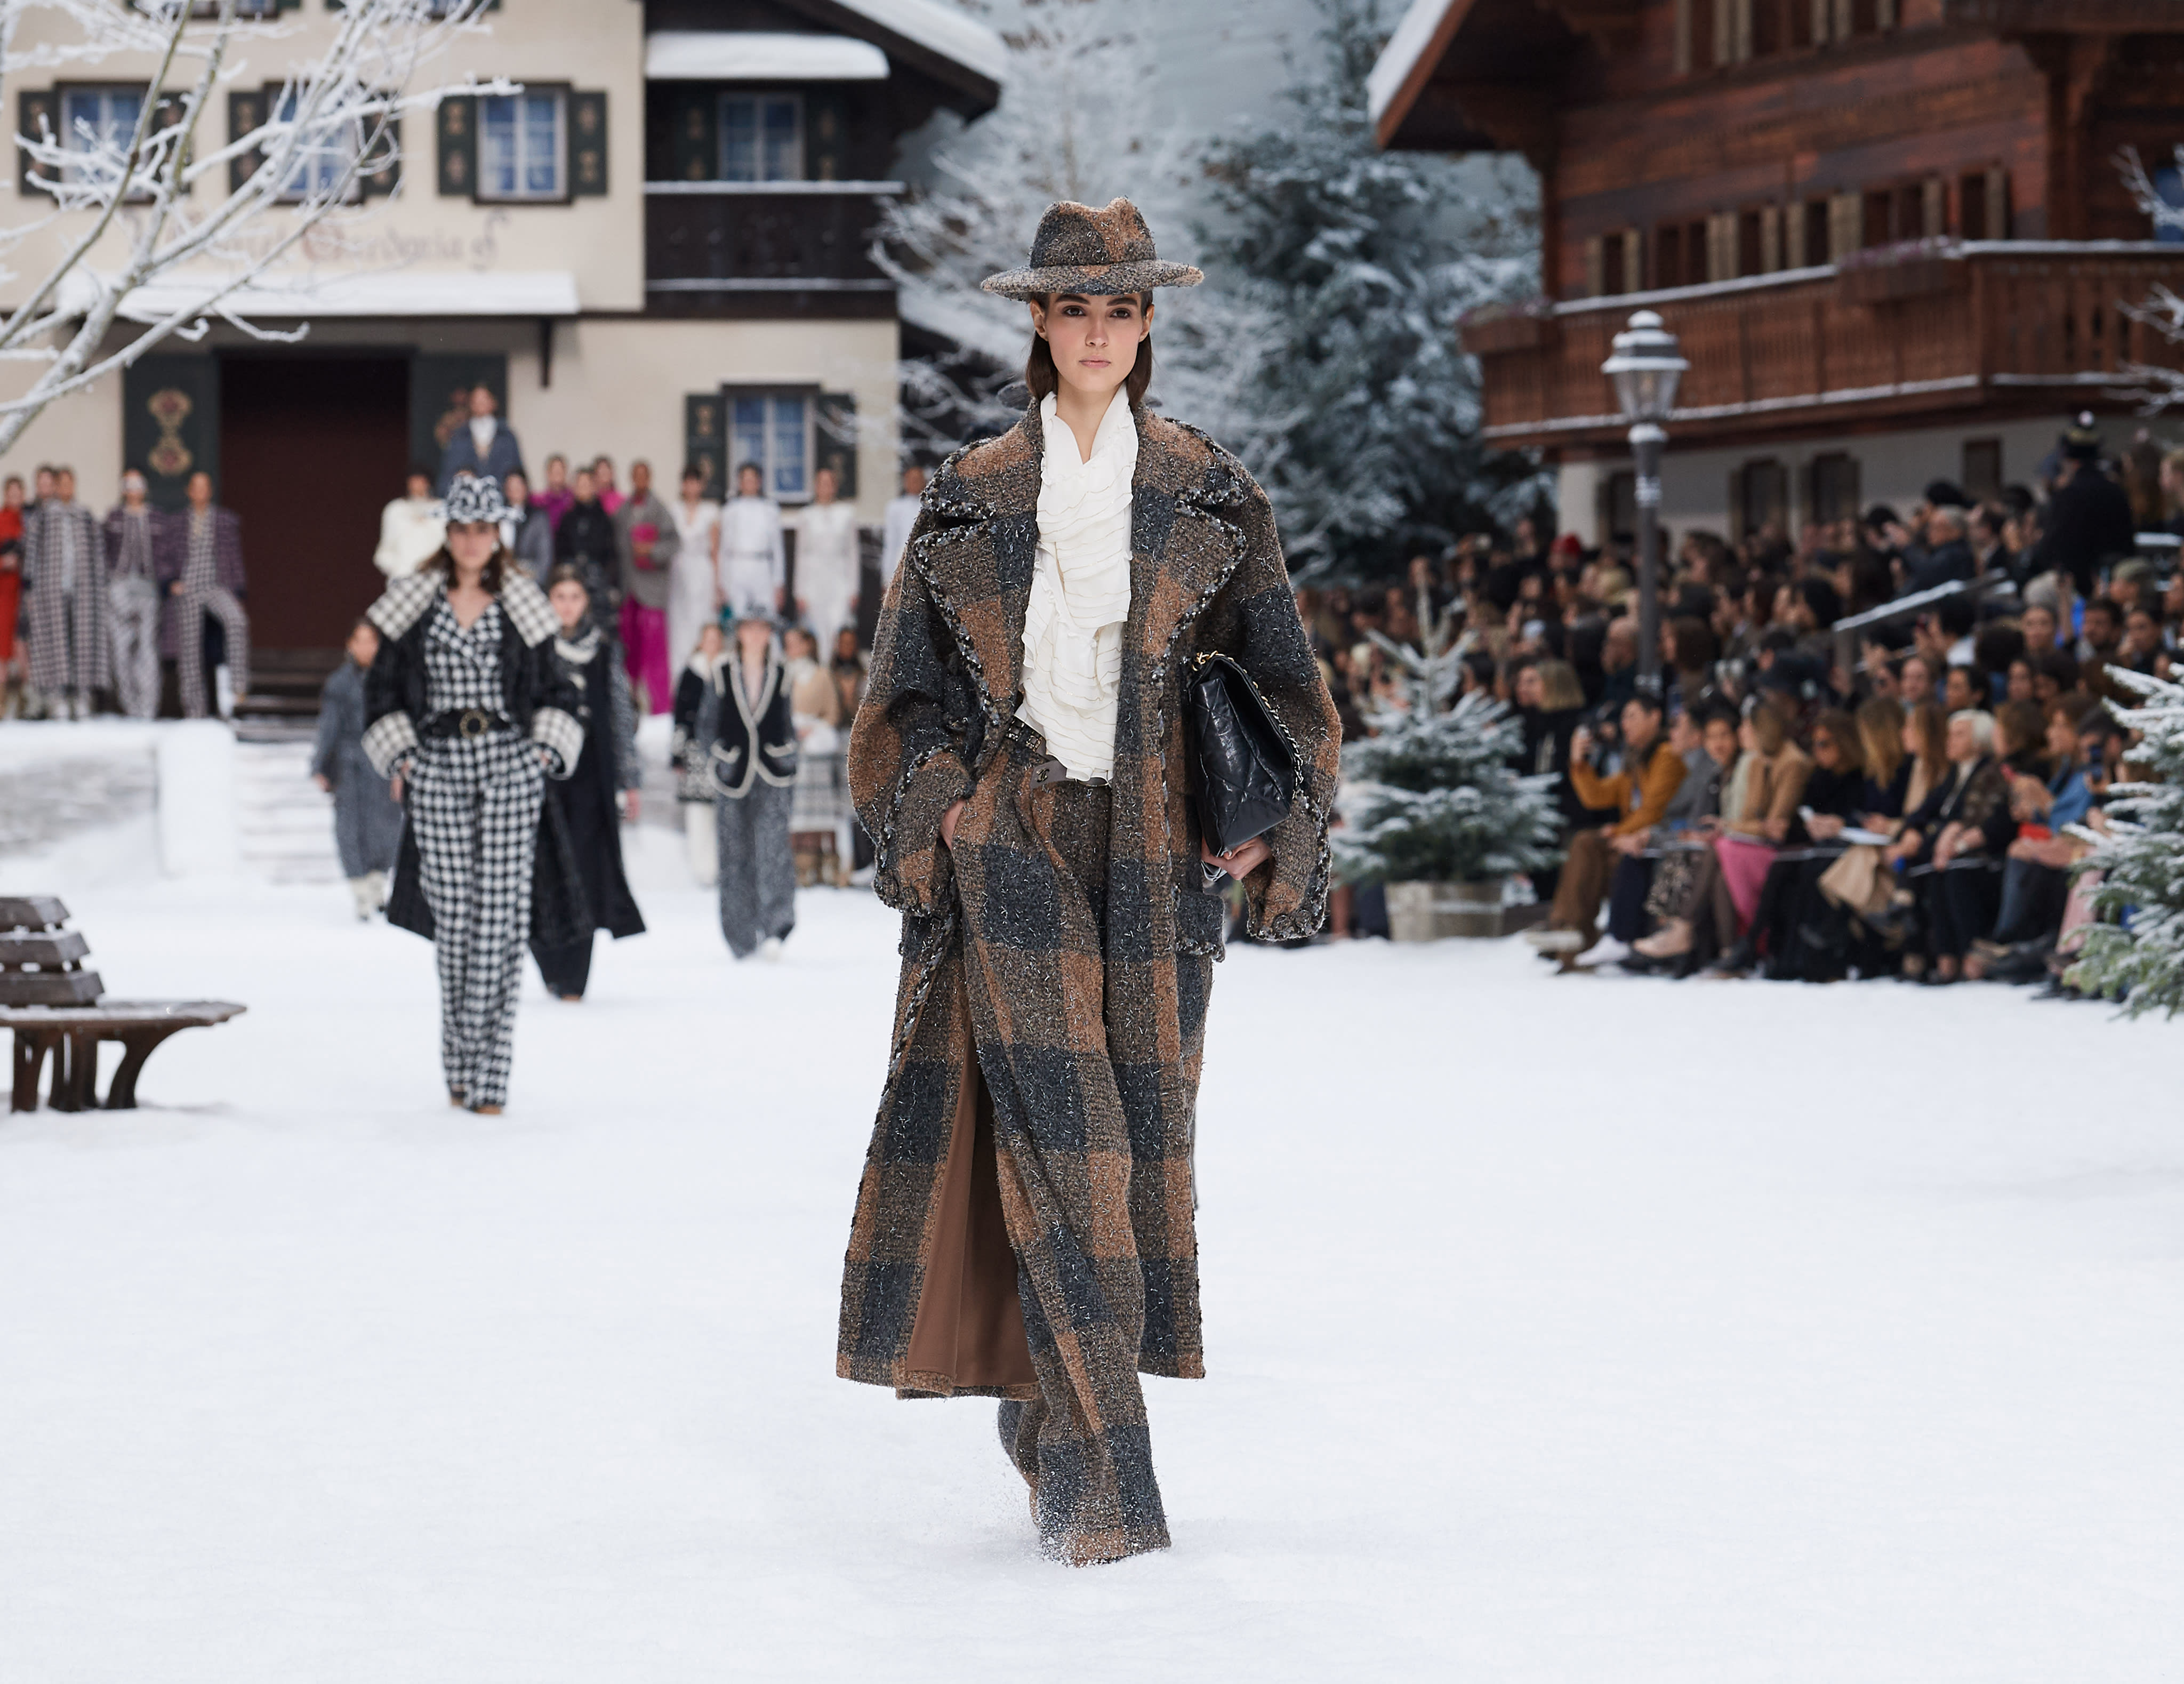 24b2152d10 Looks from the Fall-Winter 2019/20 Ready-to-wear show - CHANEL